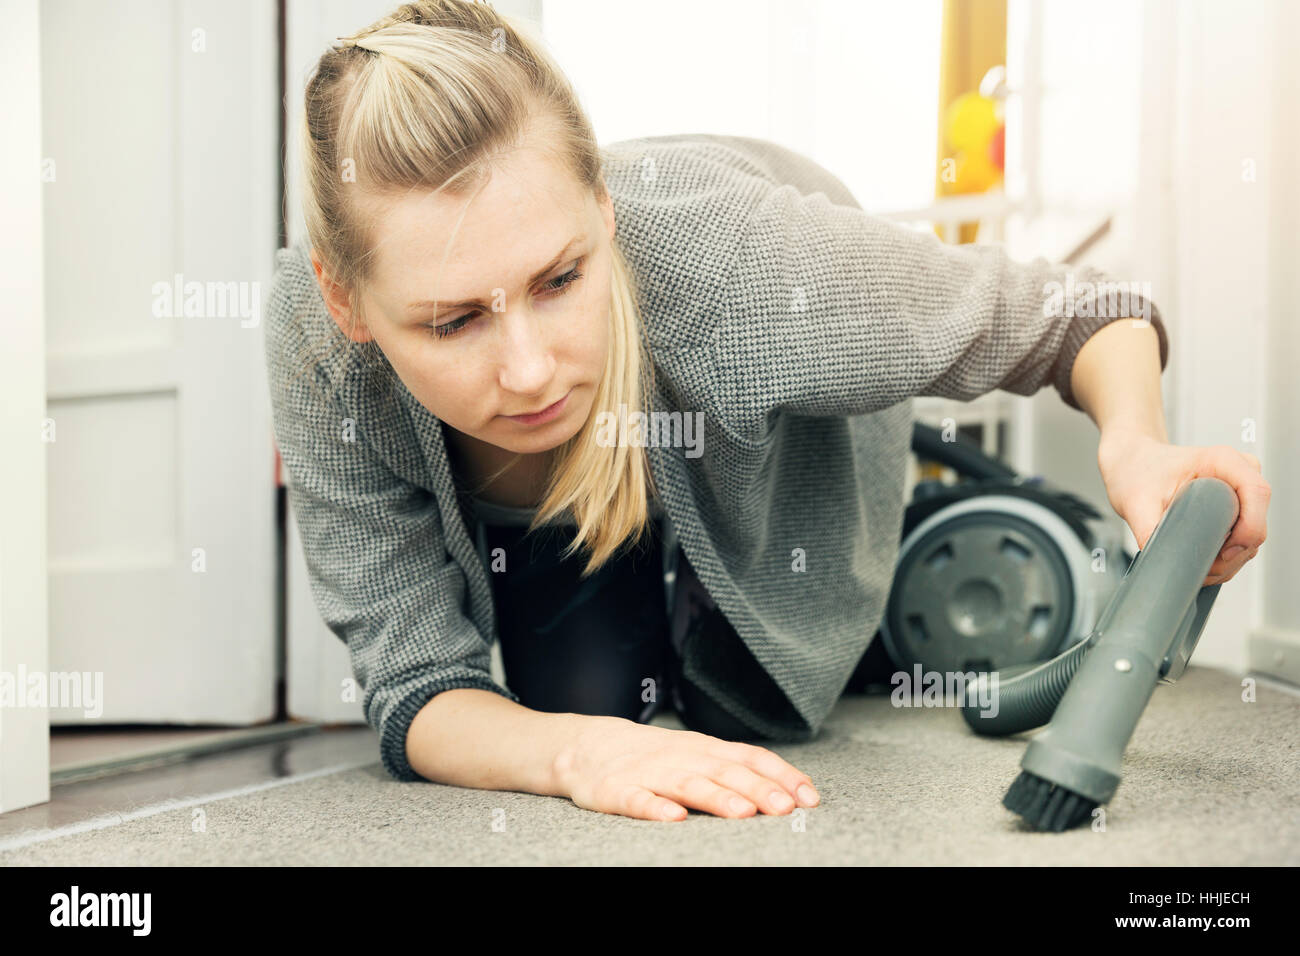 pedantic woman cleaning house with vacuum cleaner Stock Photo